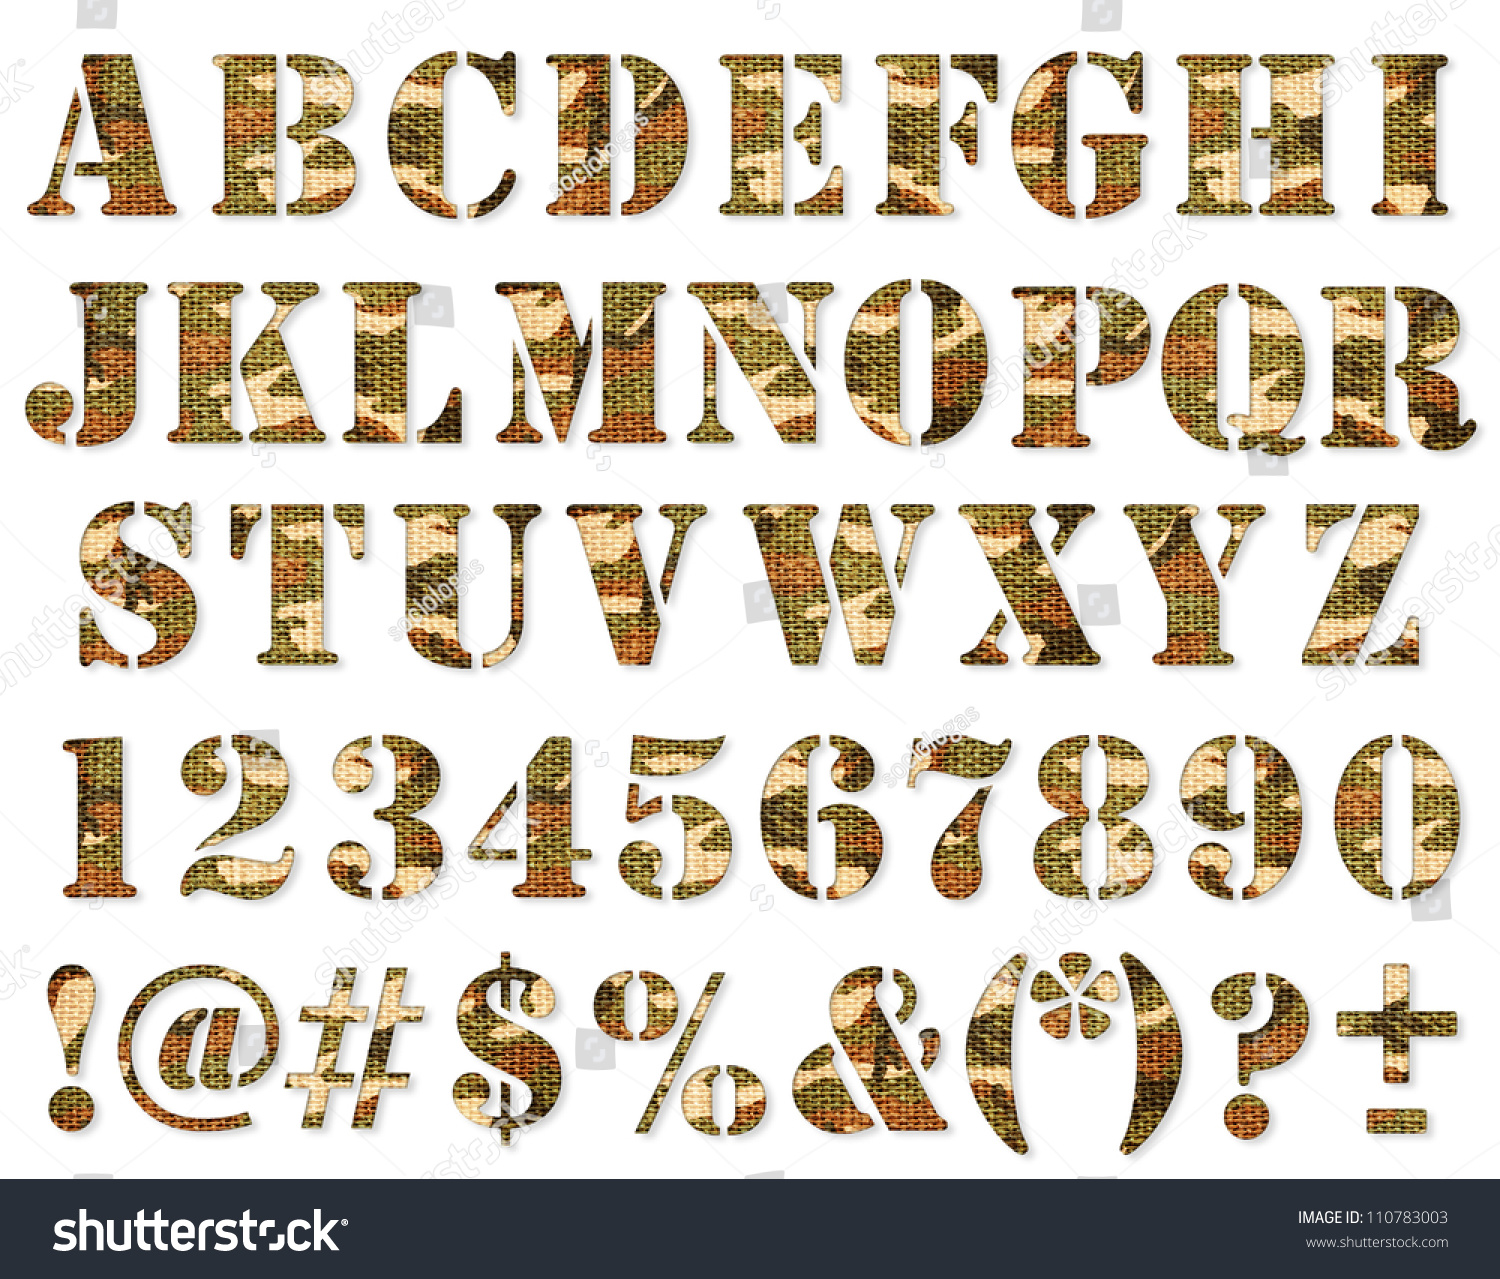 Military Camouflage Textured Abc Containing Letters Stock Photo